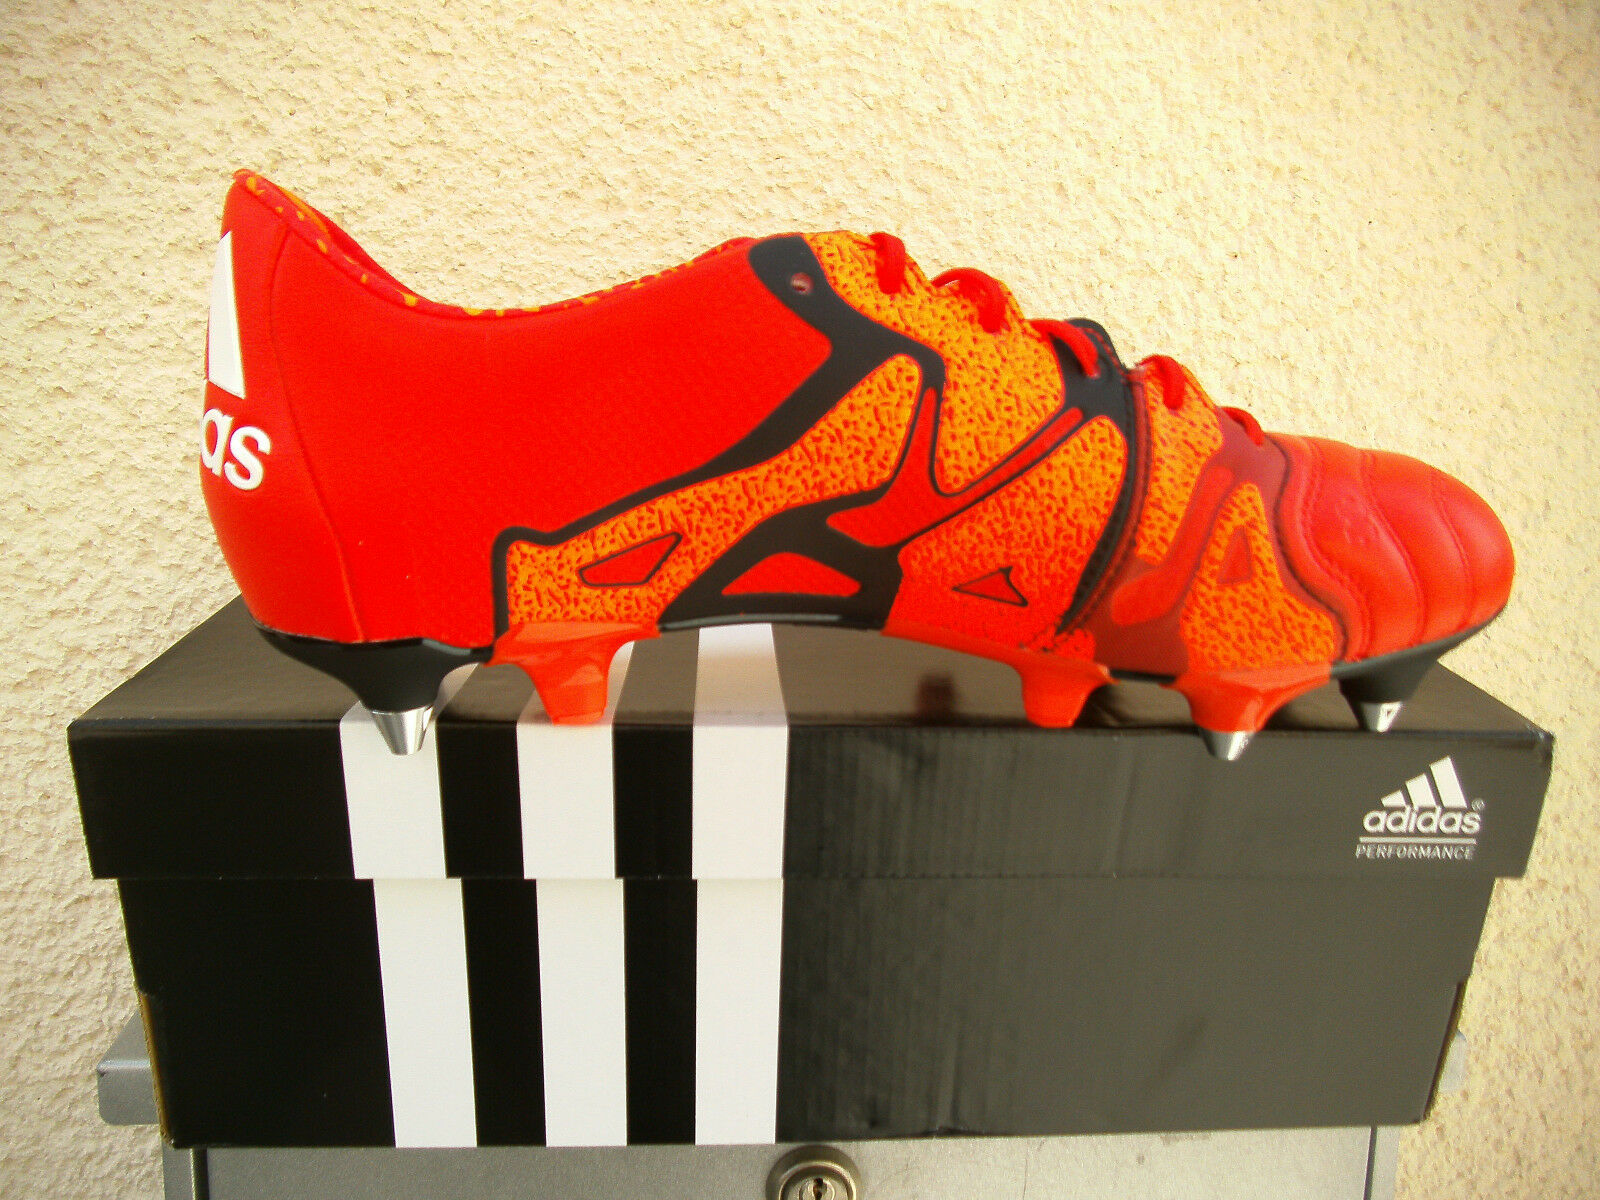 Adidas X 15.1 SG Leather Orange Gr. 39 1 1 1 3 - 40 - 42 - 48 2 3  (B26974)  Preisha c2580c